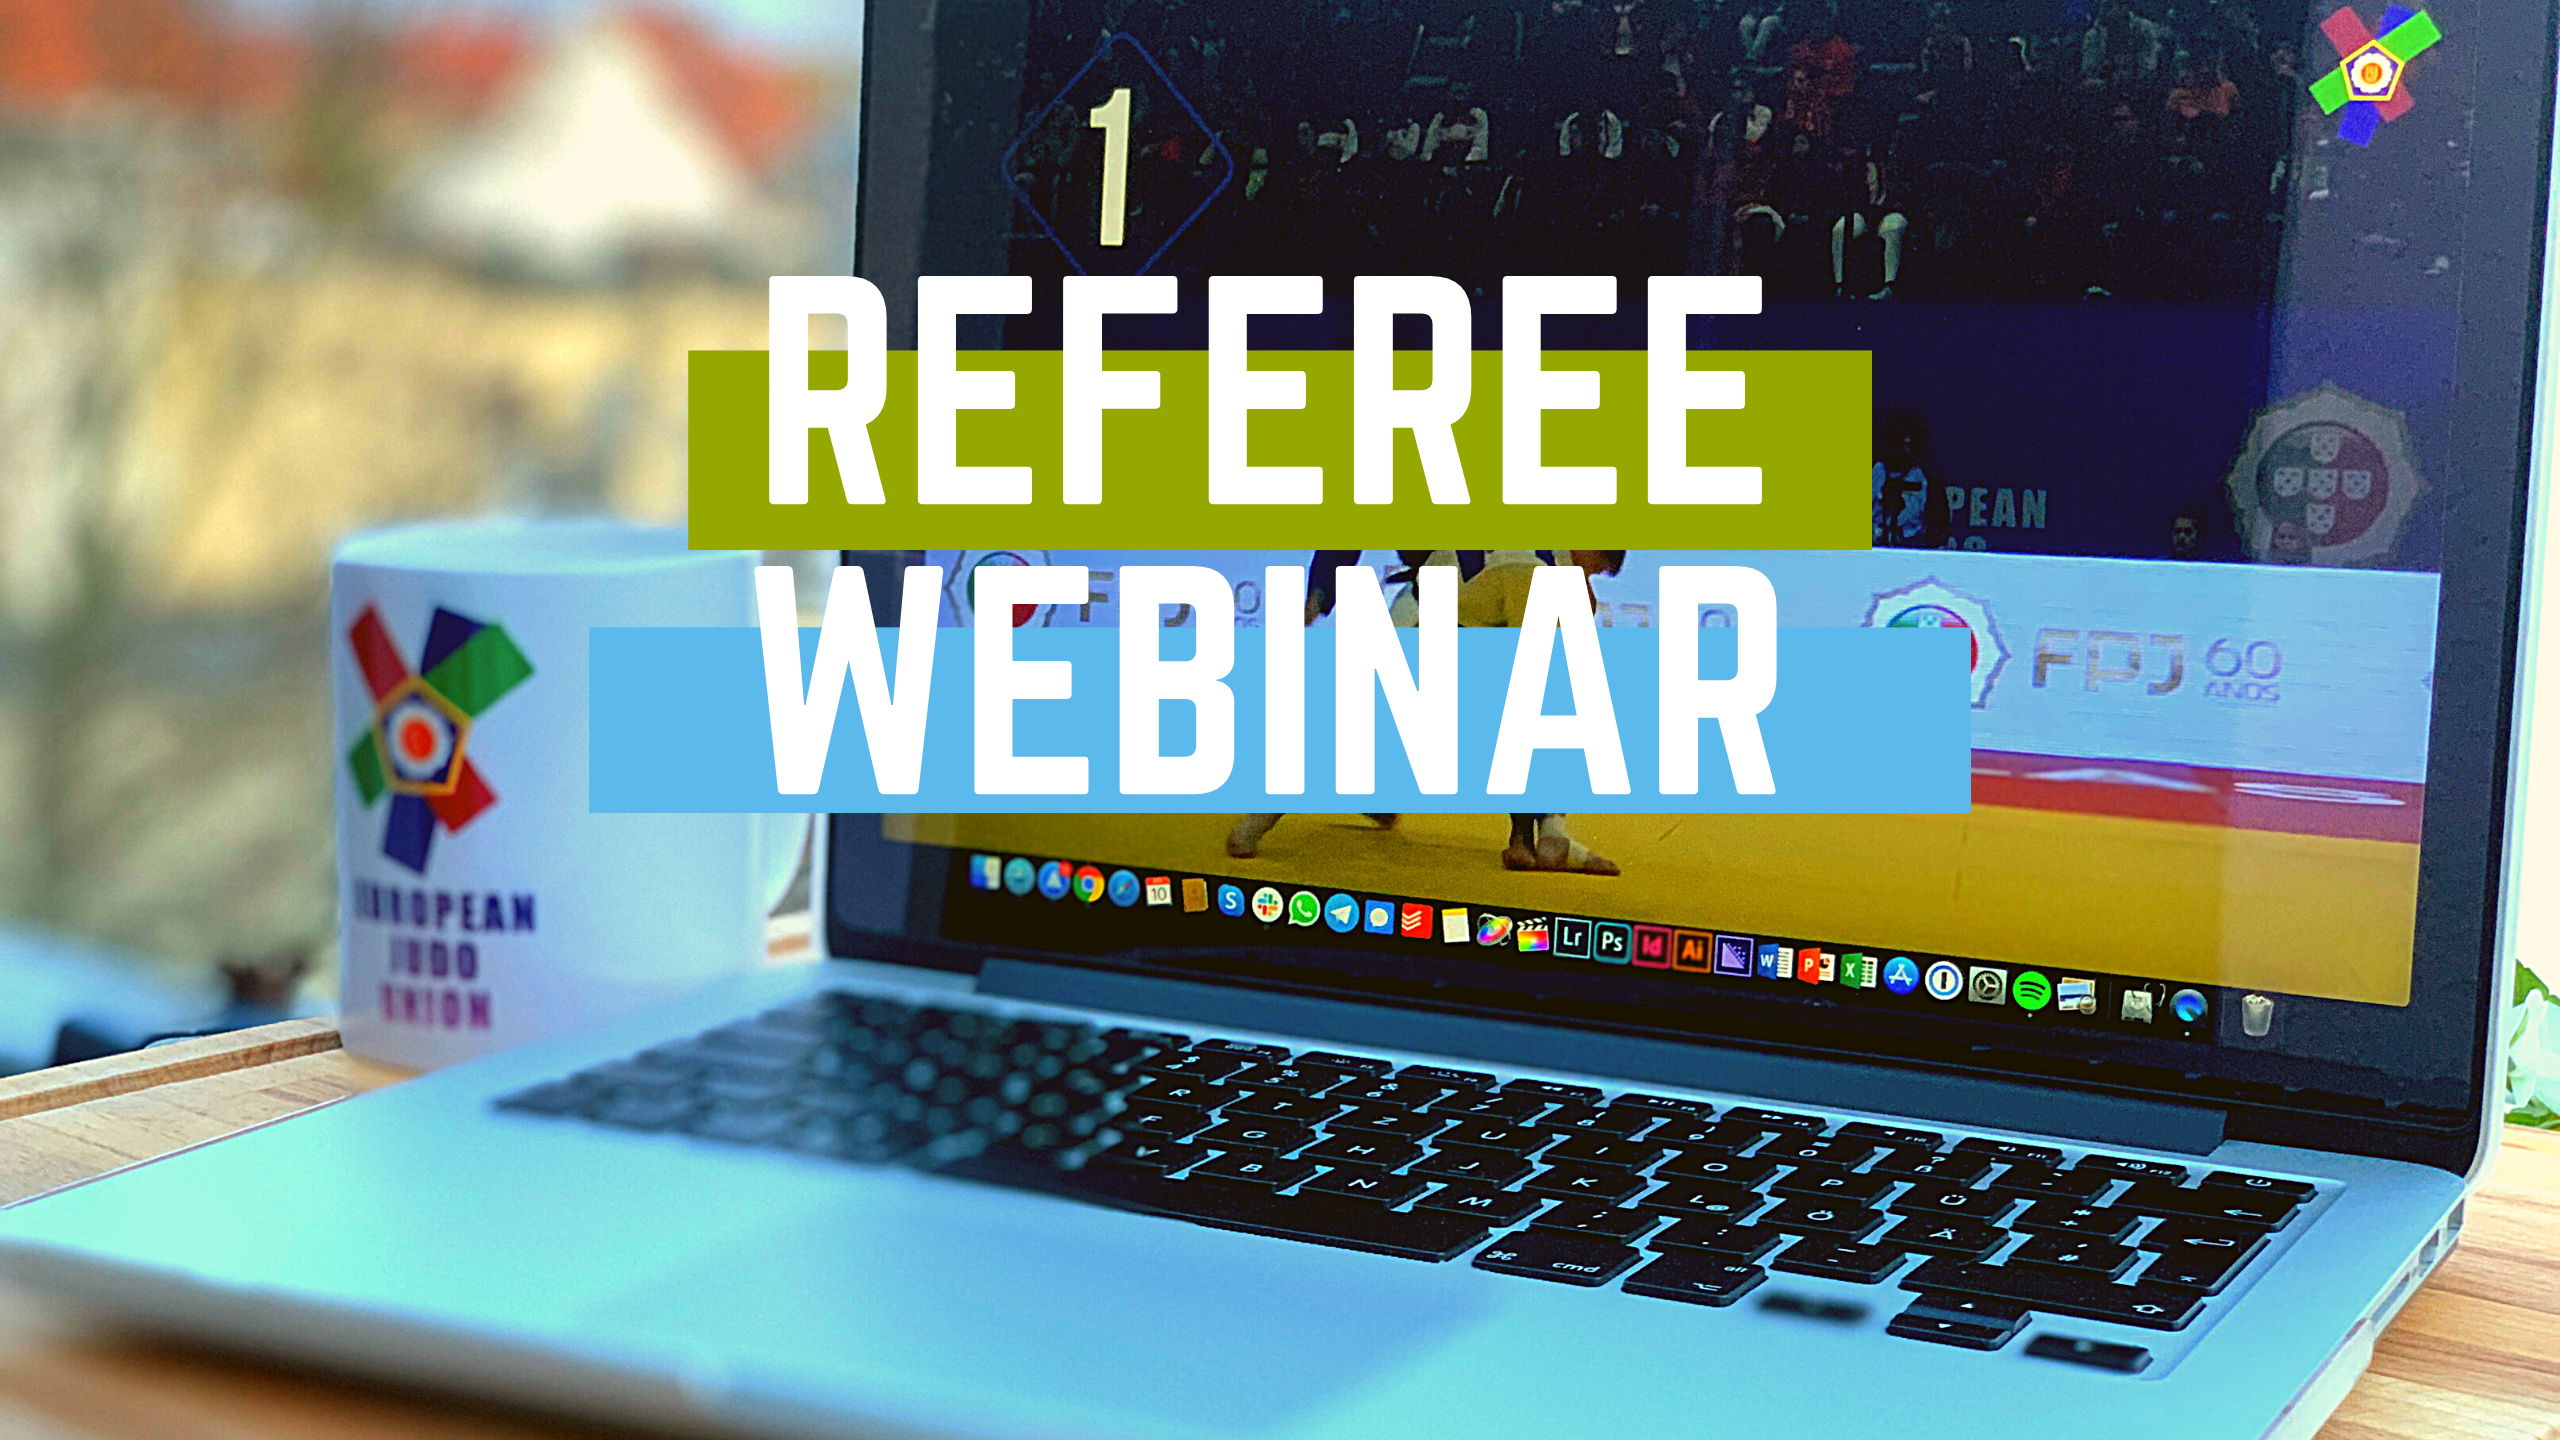 REFEREEING WEBINAR CONTINUES